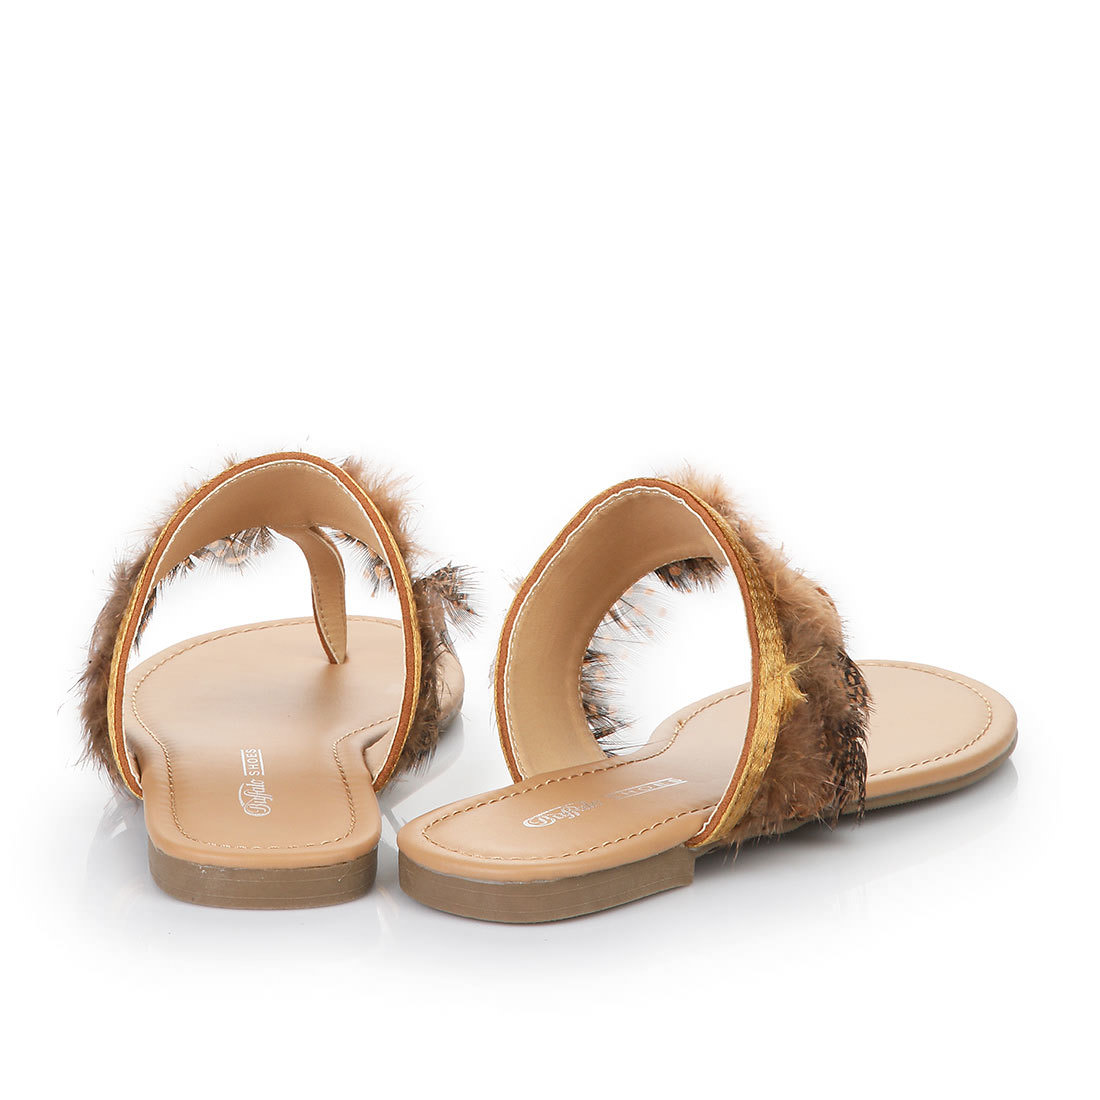 buffalo flip flop sandals in cognac buy online in buffalo. Black Bedroom Furniture Sets. Home Design Ideas